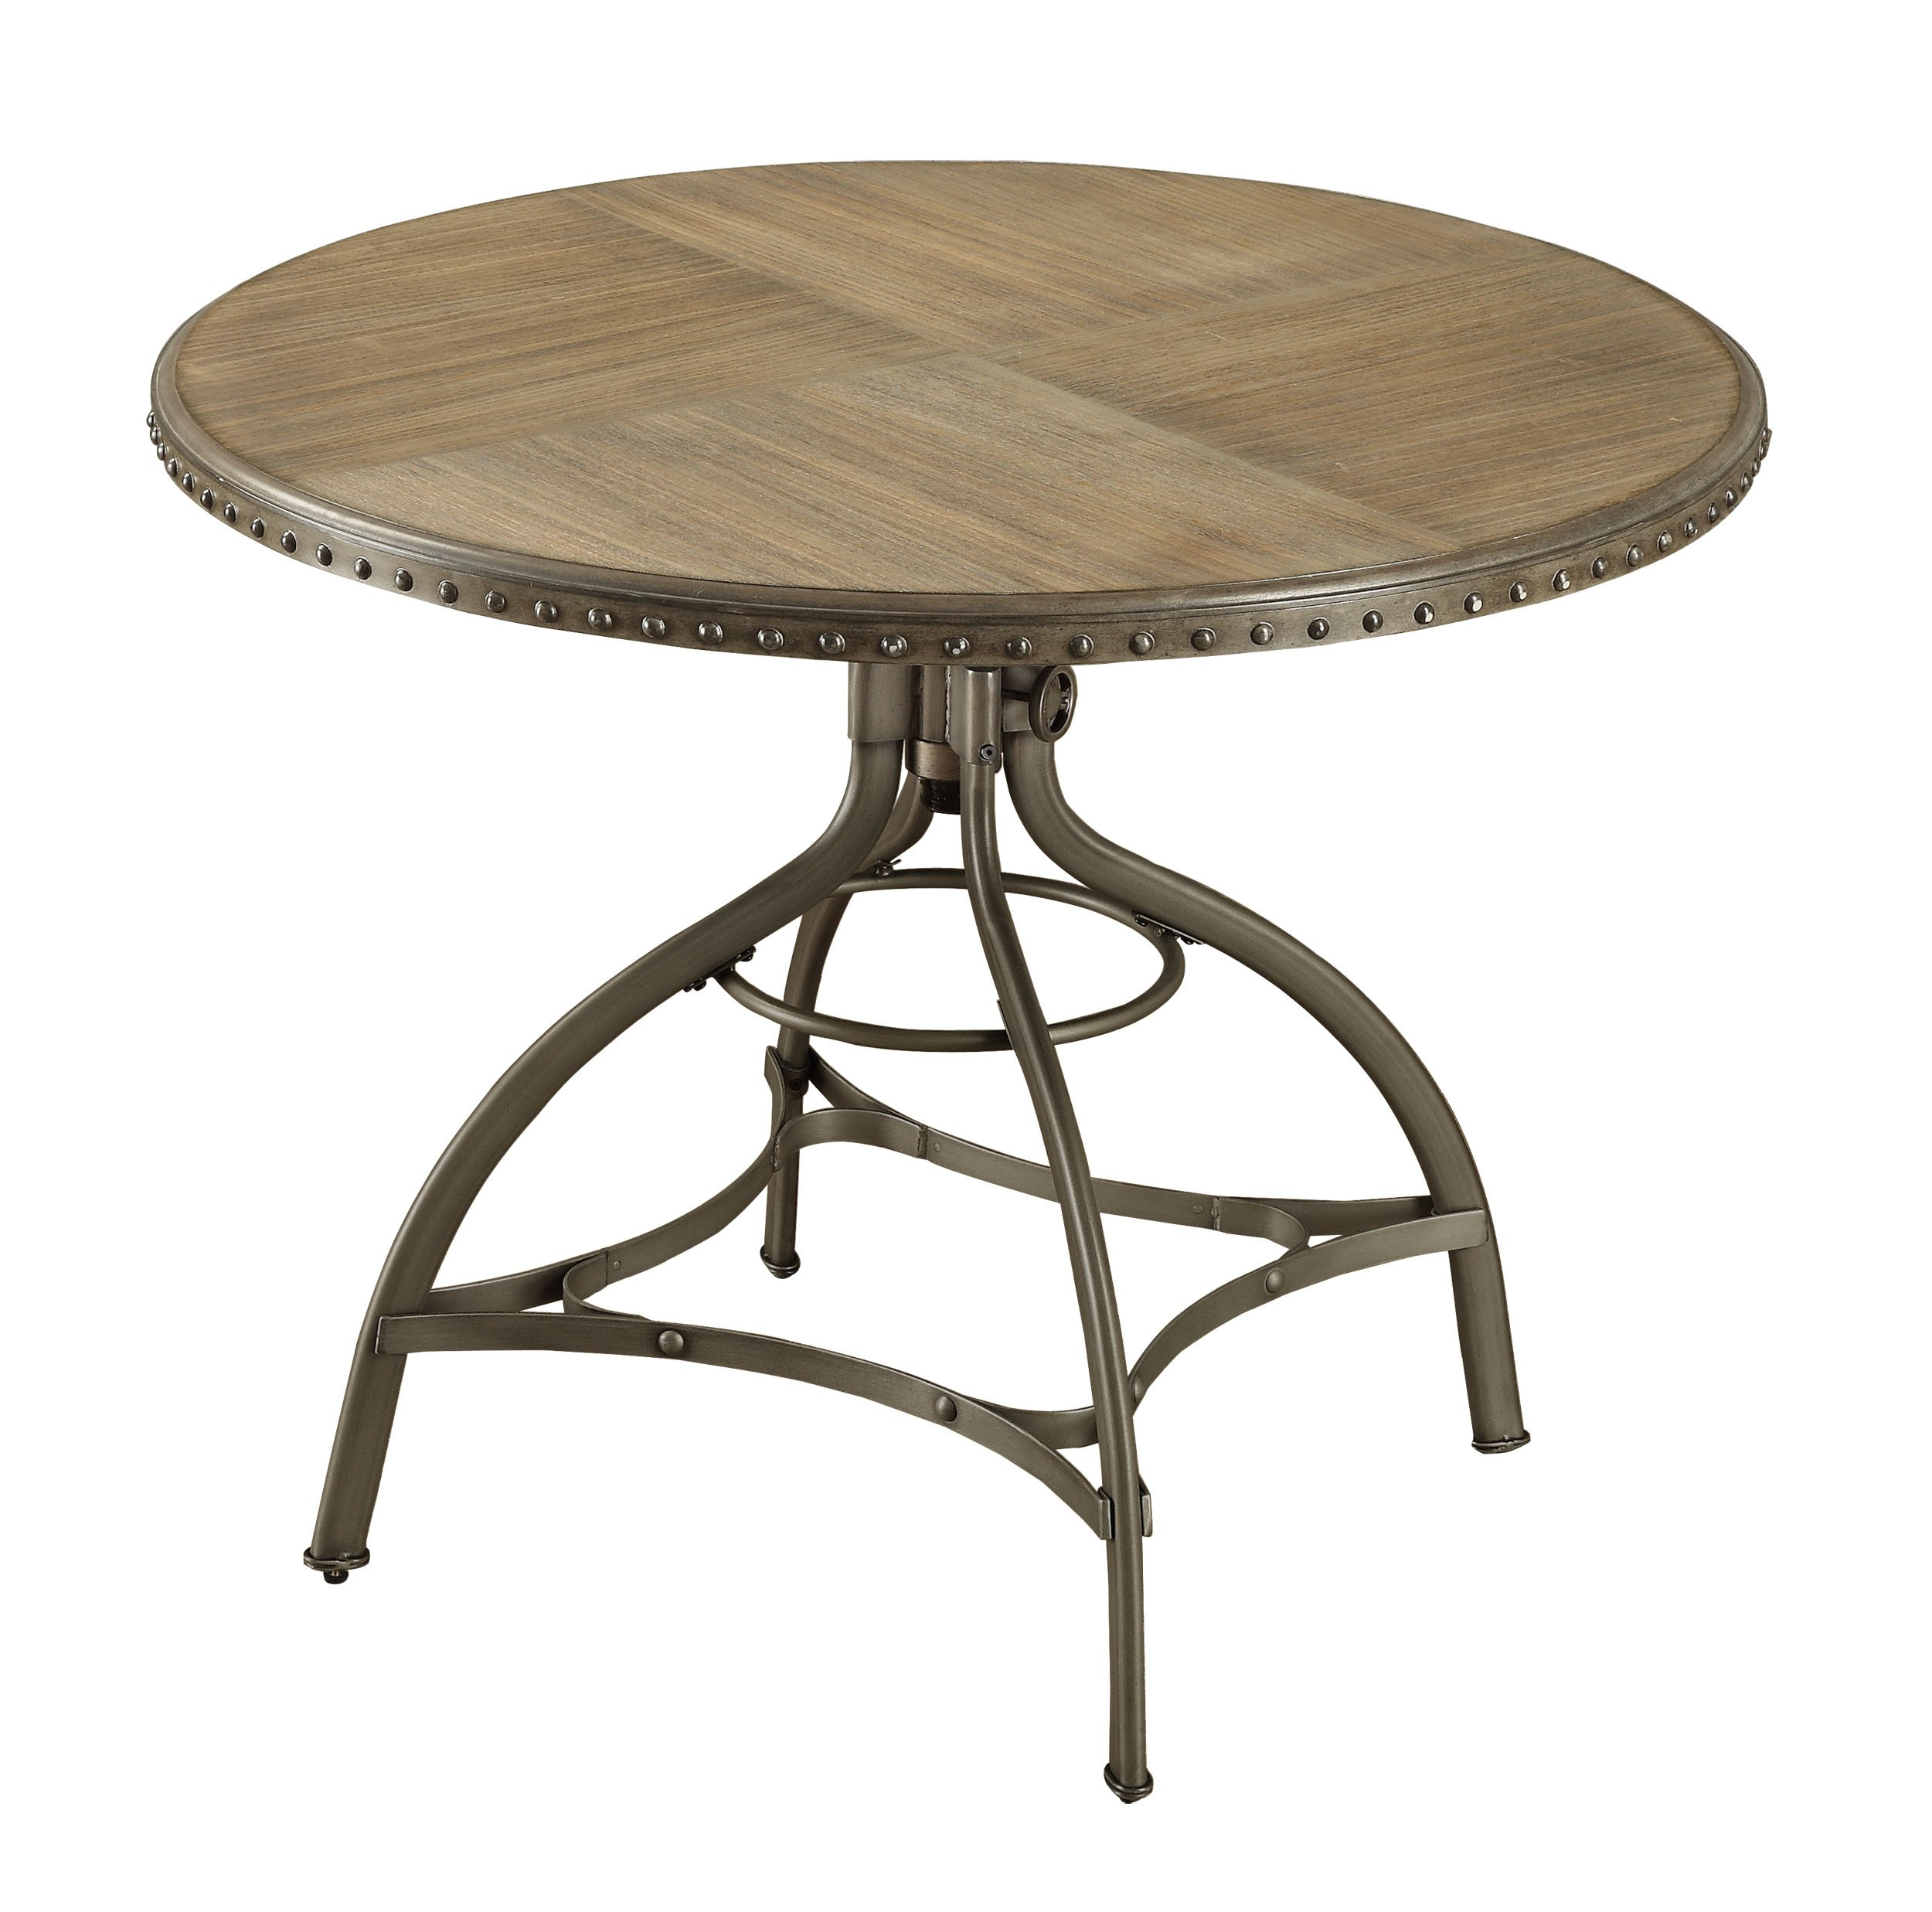 Homelegance Beacher 45'' Adjustable Height Round Dining Table with Riveted Metal Banding Accent